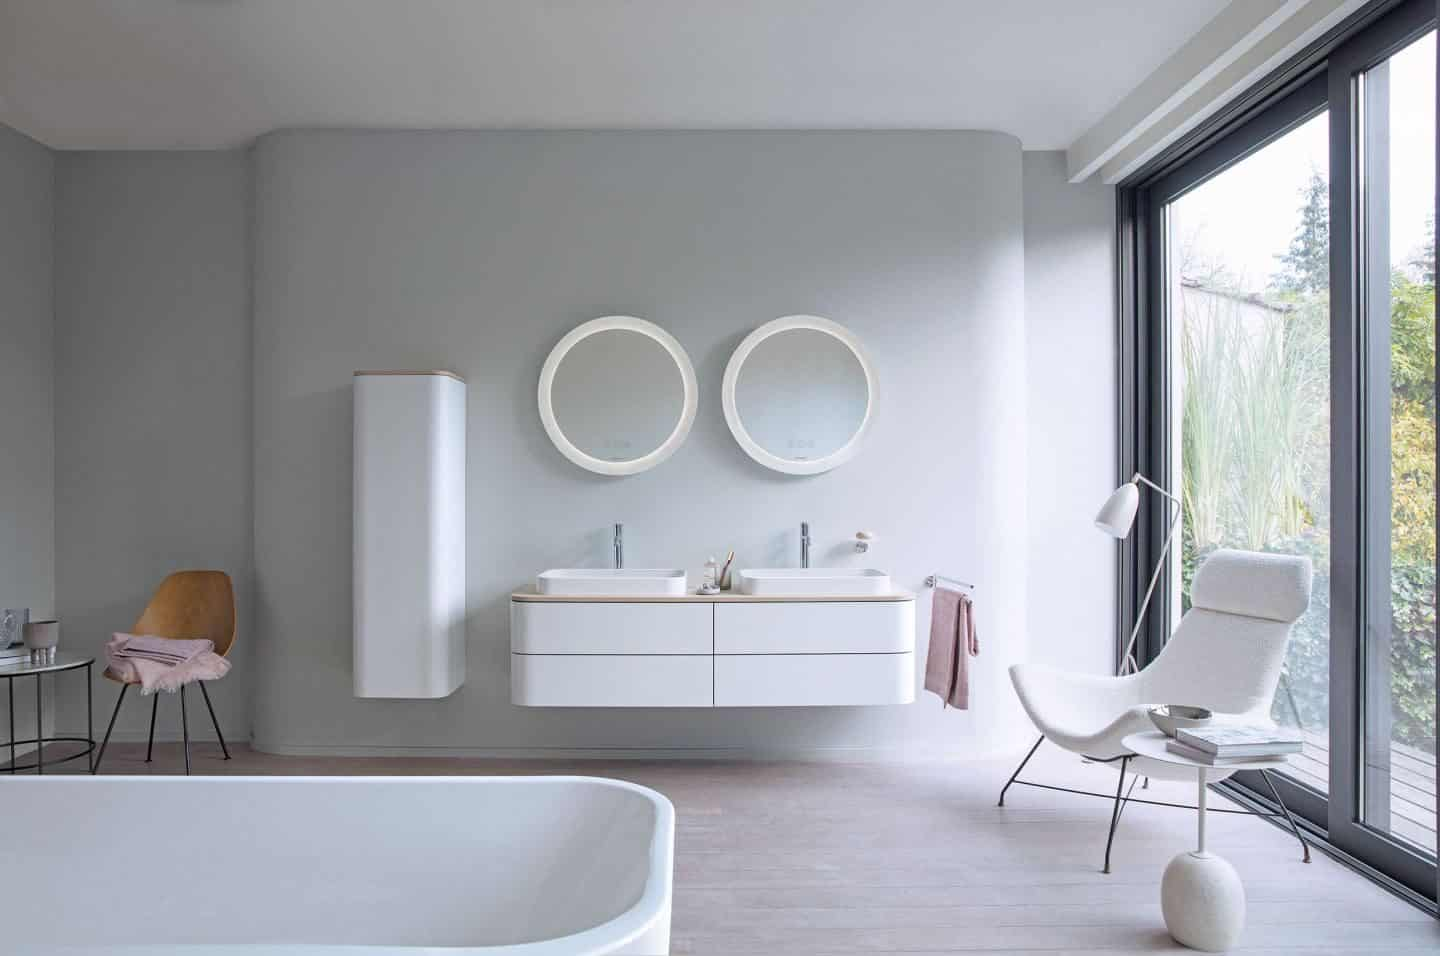 Happy D 2 plus bathroom range from Luxury bathroom brand Duravit